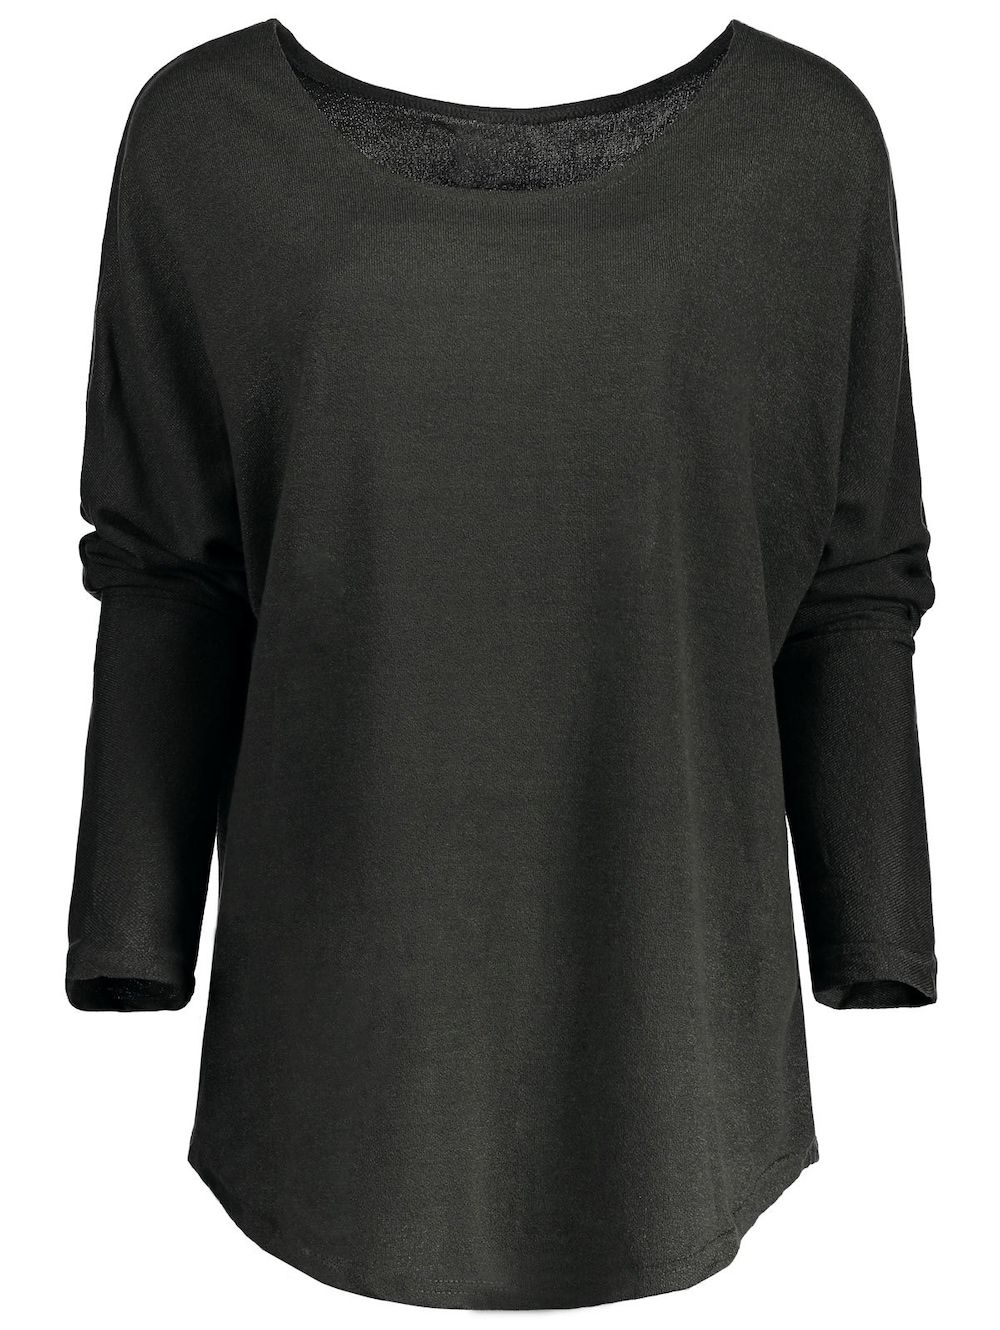 Womenus scoop neck asymmetrical long sleeve sweater scoop neck